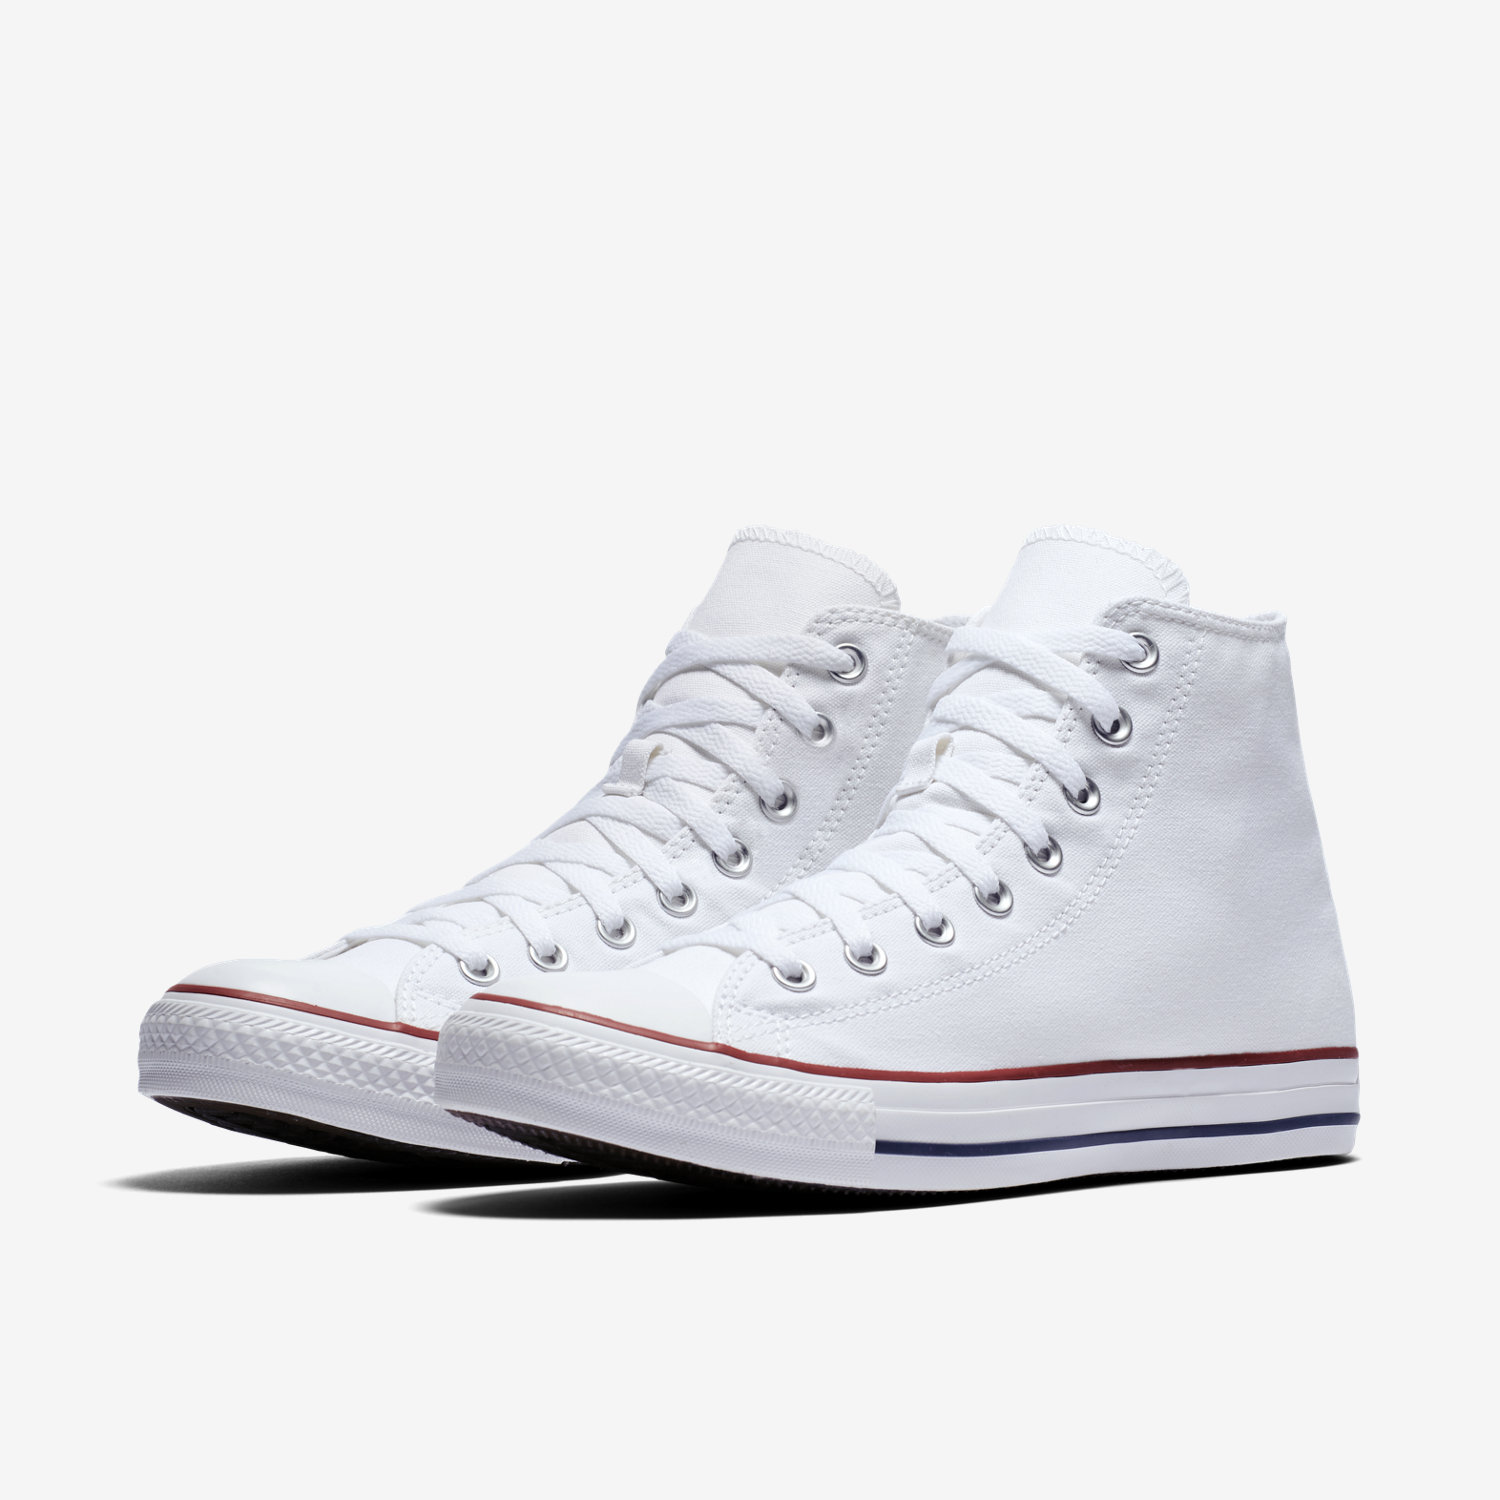 0b0f353a332 Converse Chuck Taylor All Star   Buy Discount Shoes from Asics and ...